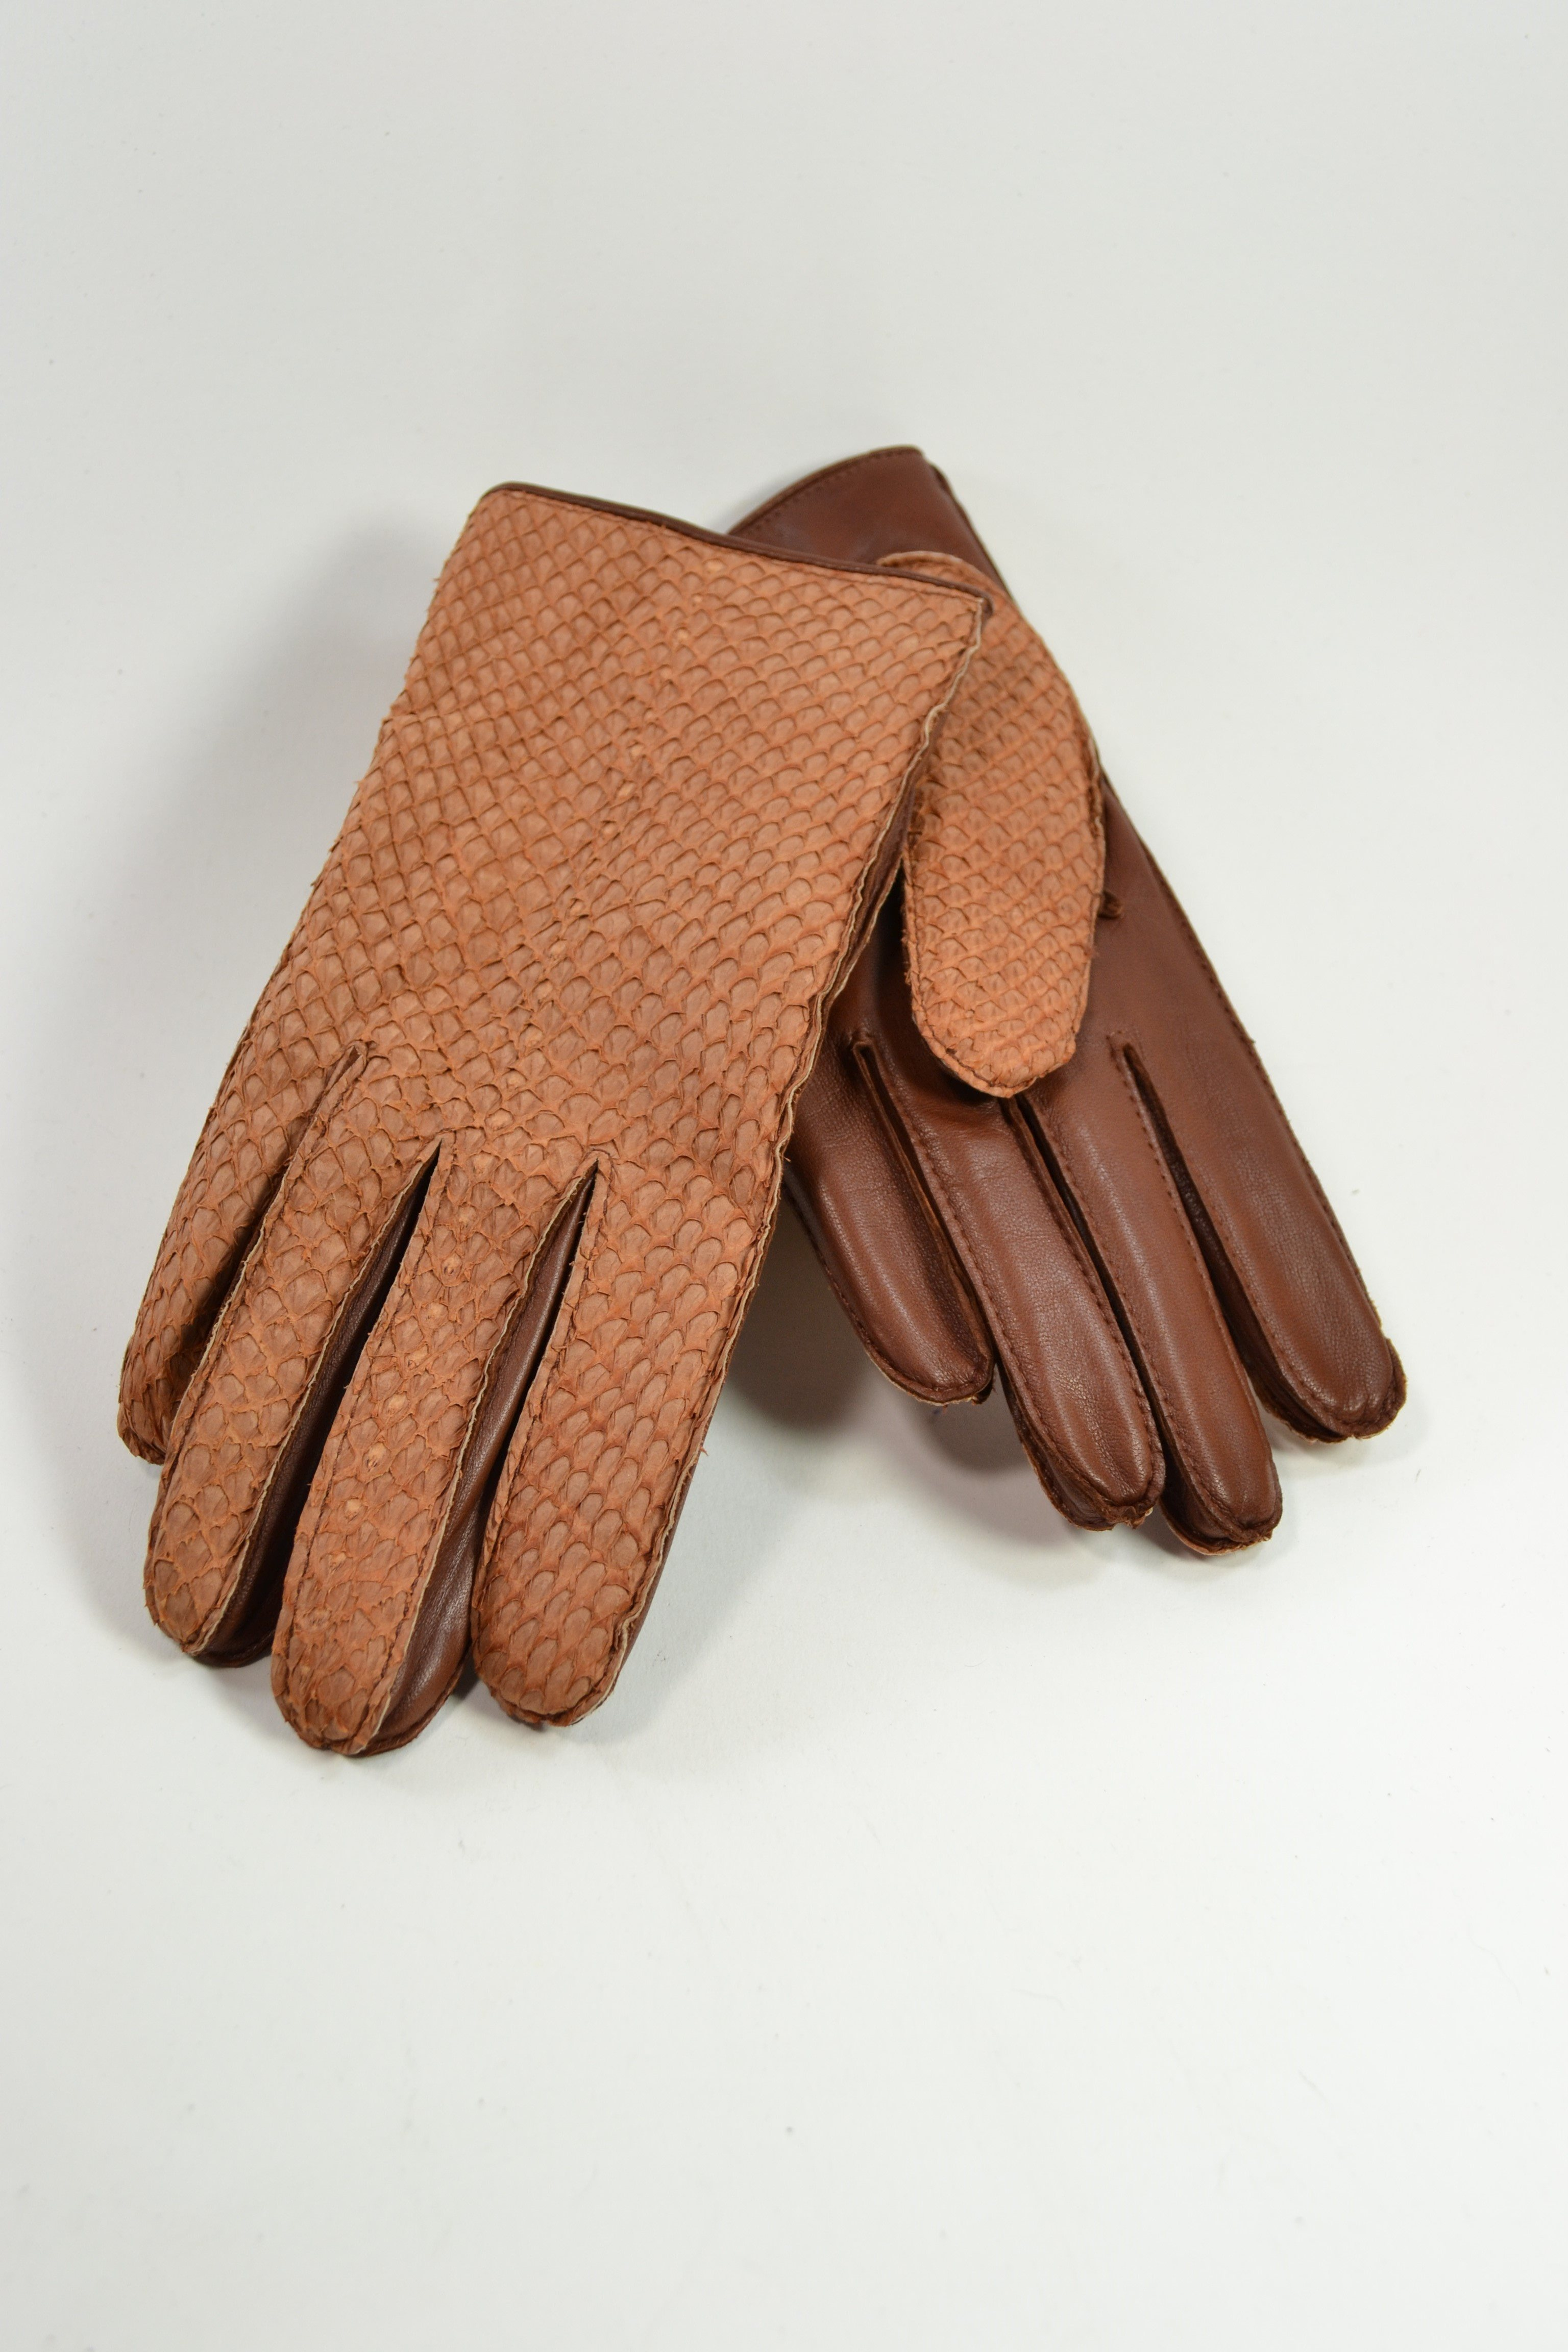 Salmon ladies gloves, cashmere lined, tan